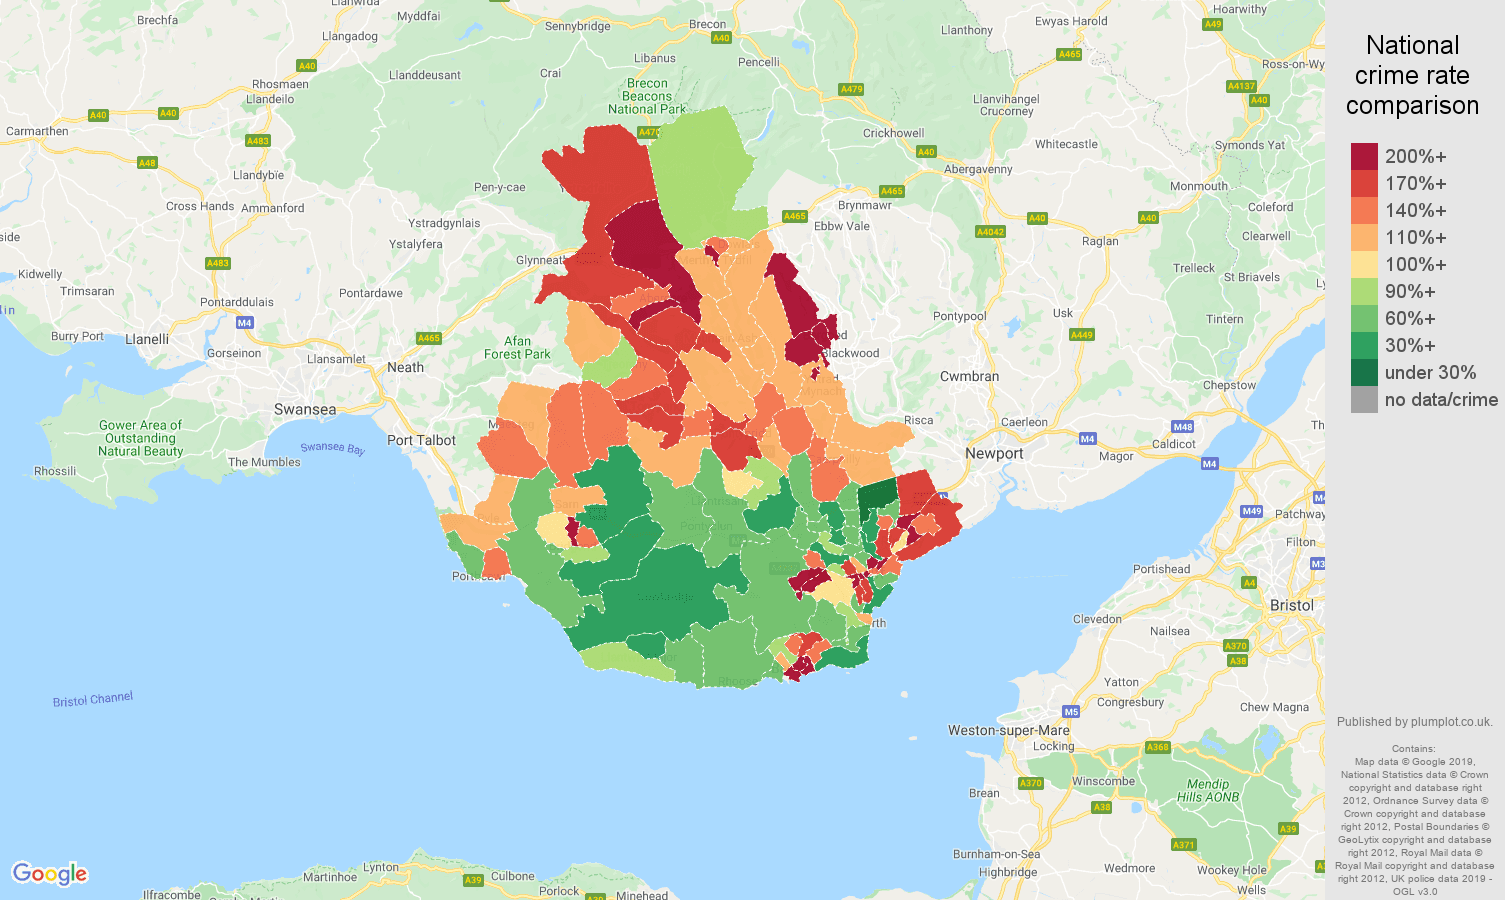 Cardiff public order crime rate comparison map